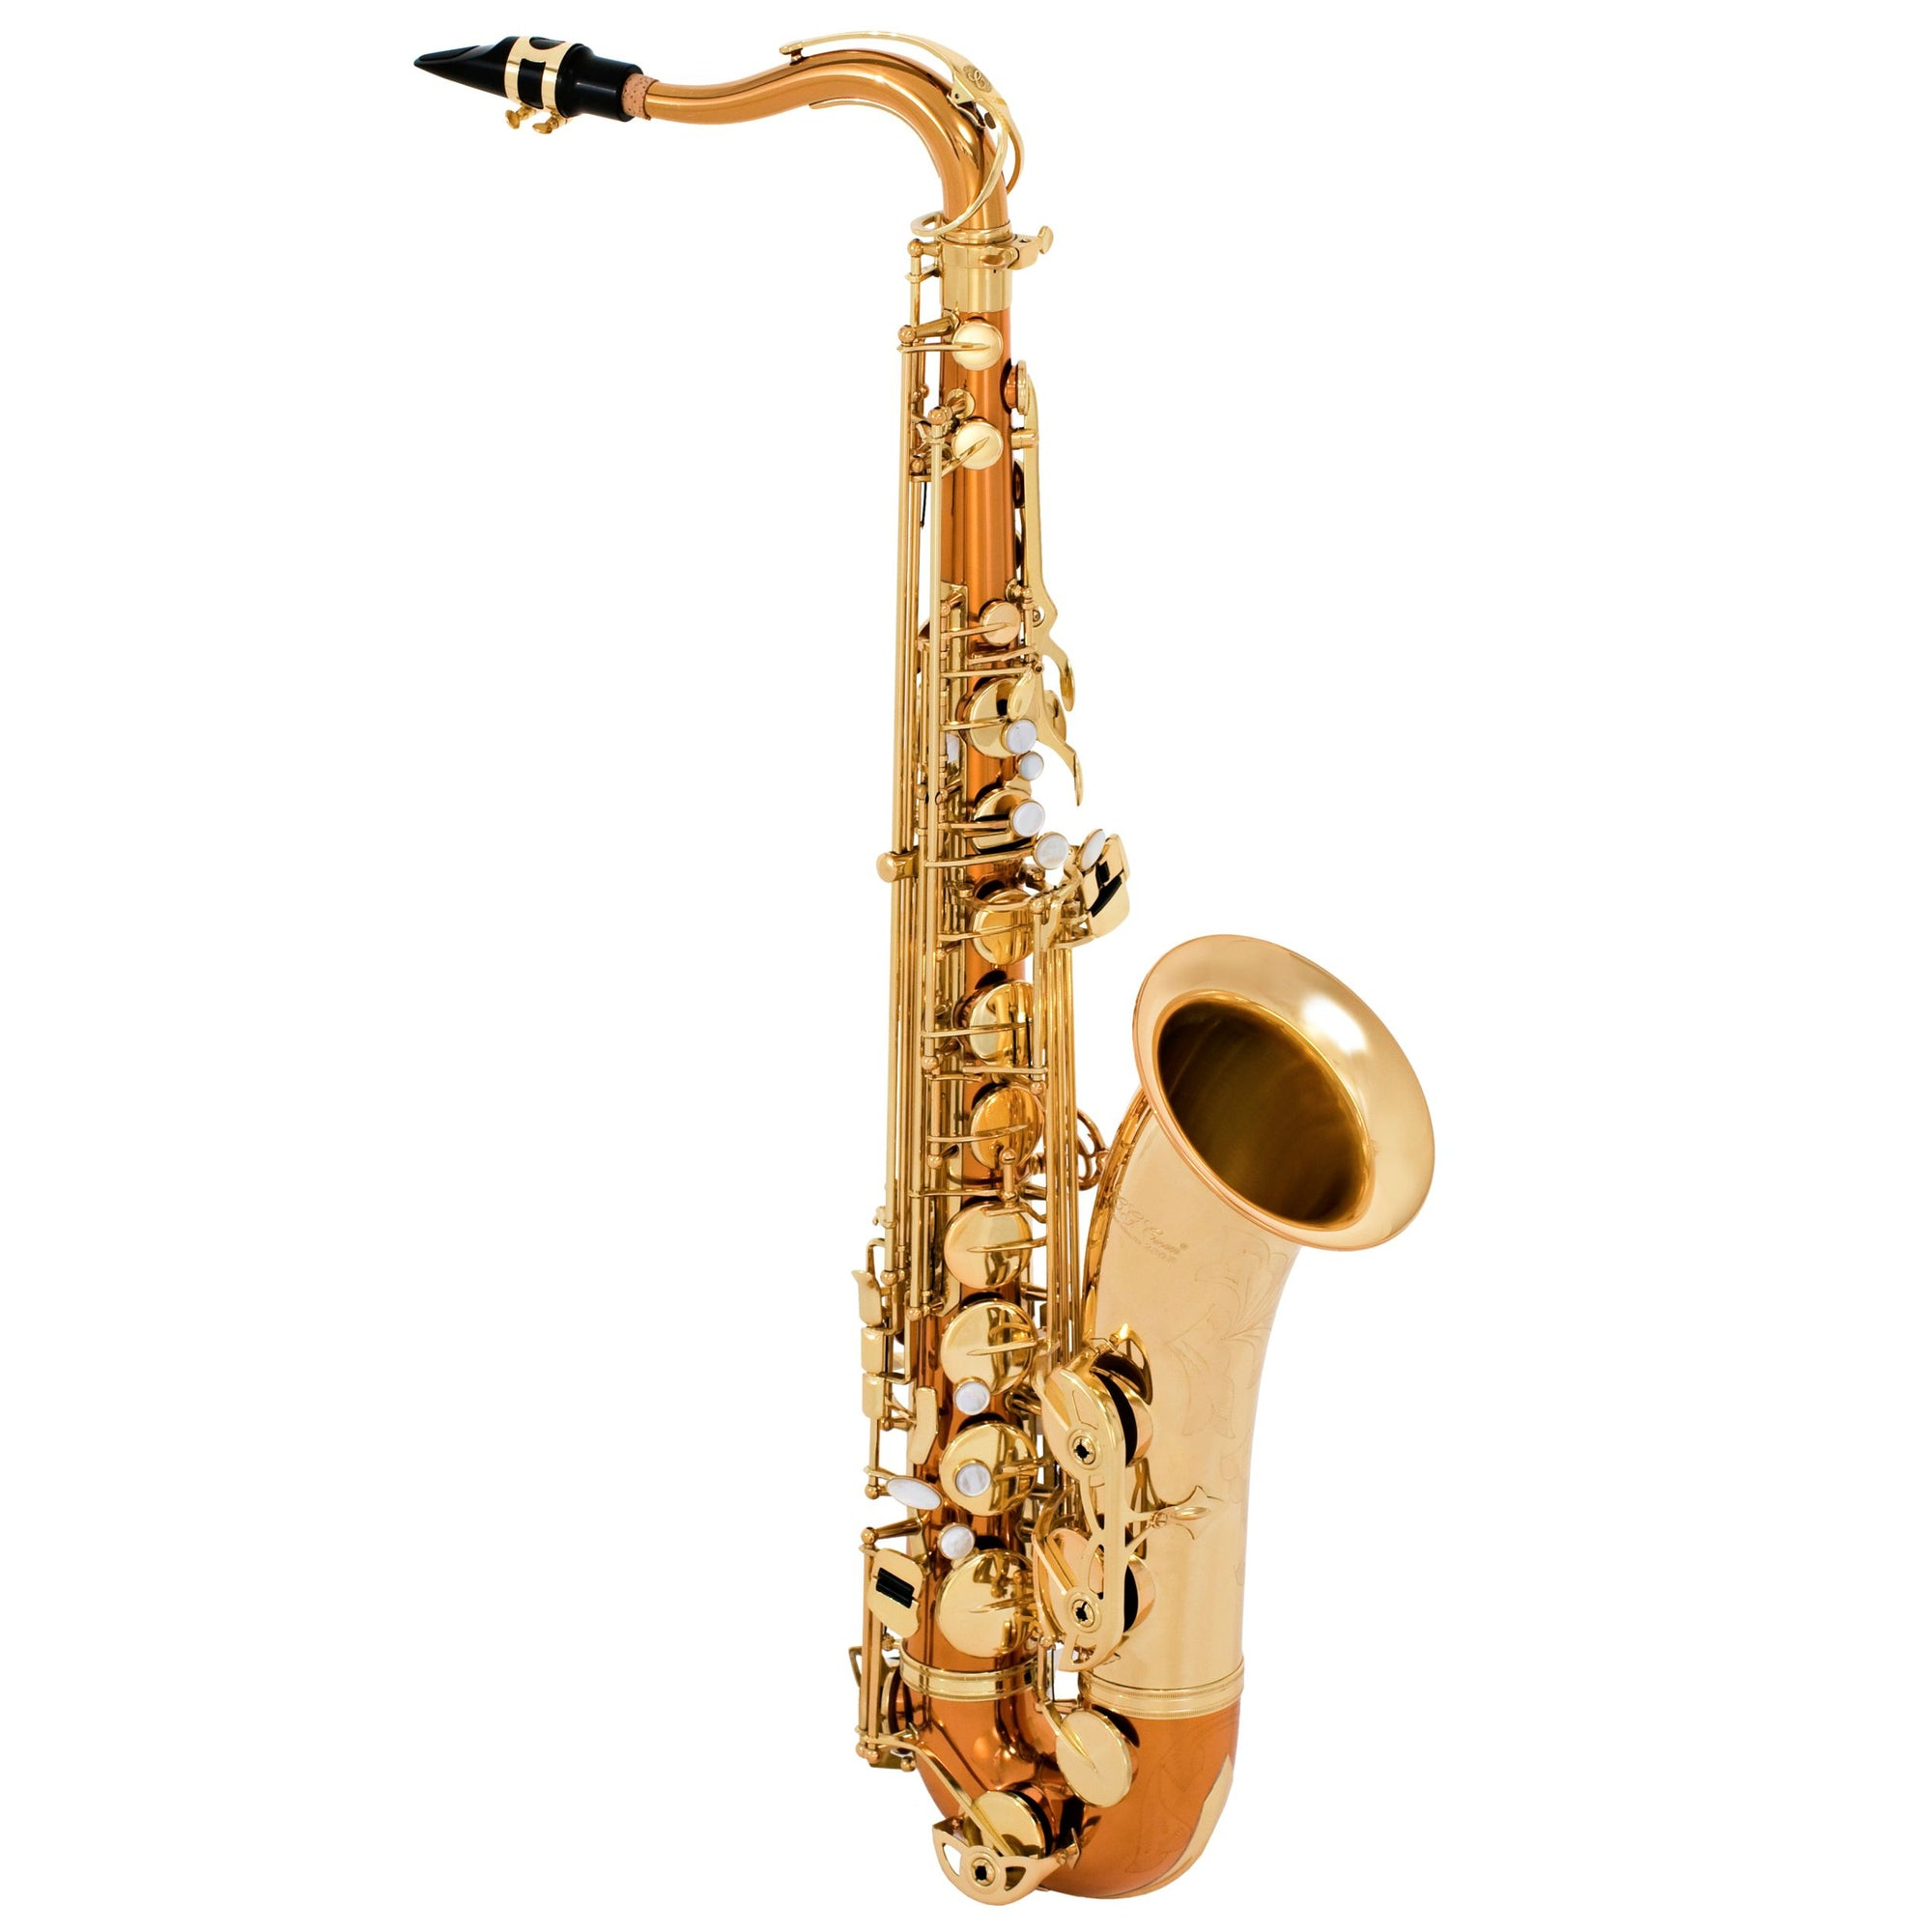 Selmer STS280RC LaVoix II Tenor Saxophone Outfit - Copper Brass